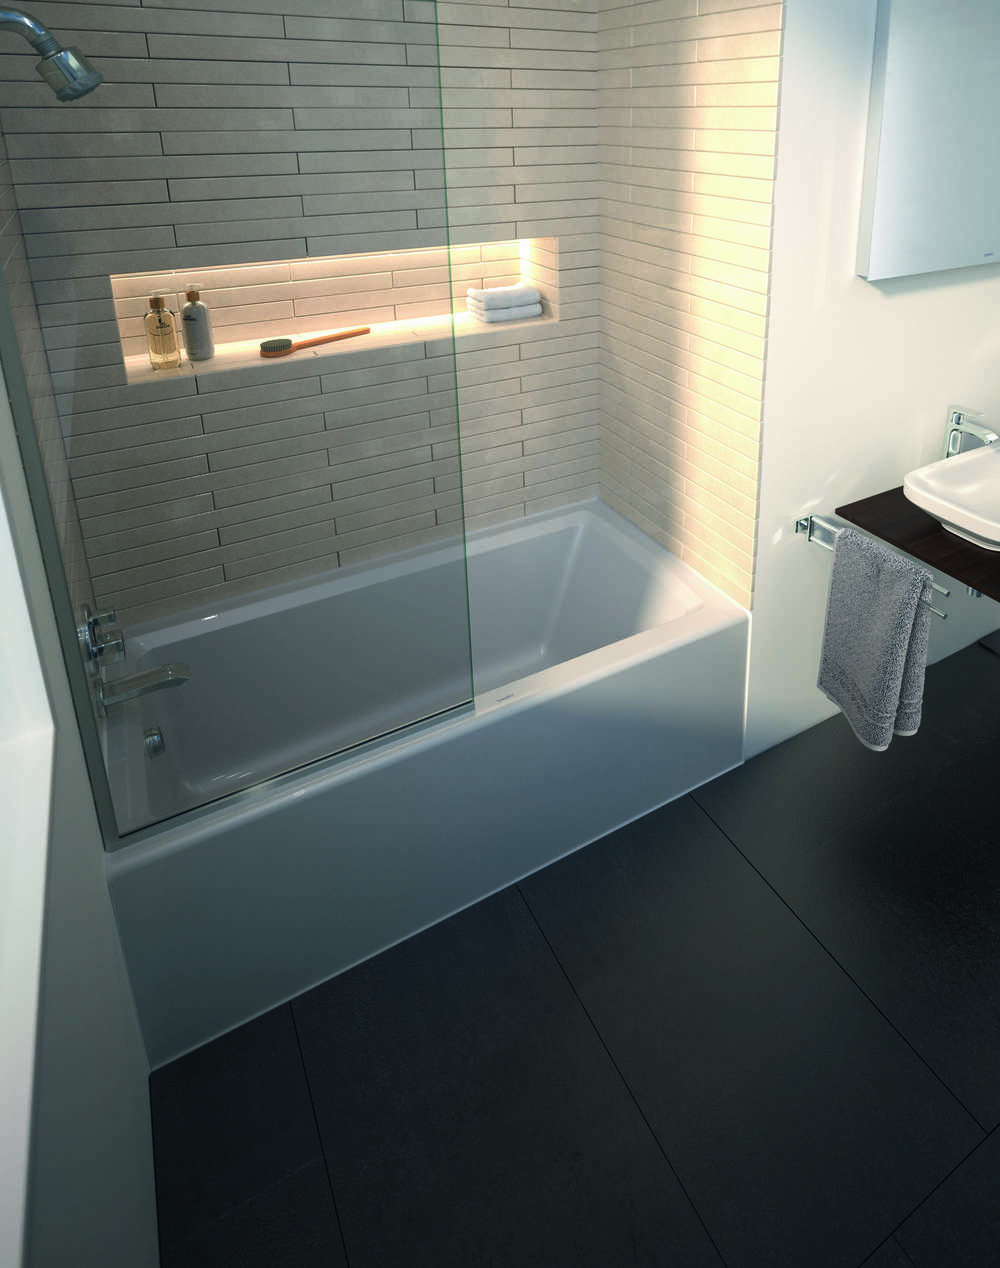 Architec_Bathtub_01.jpg